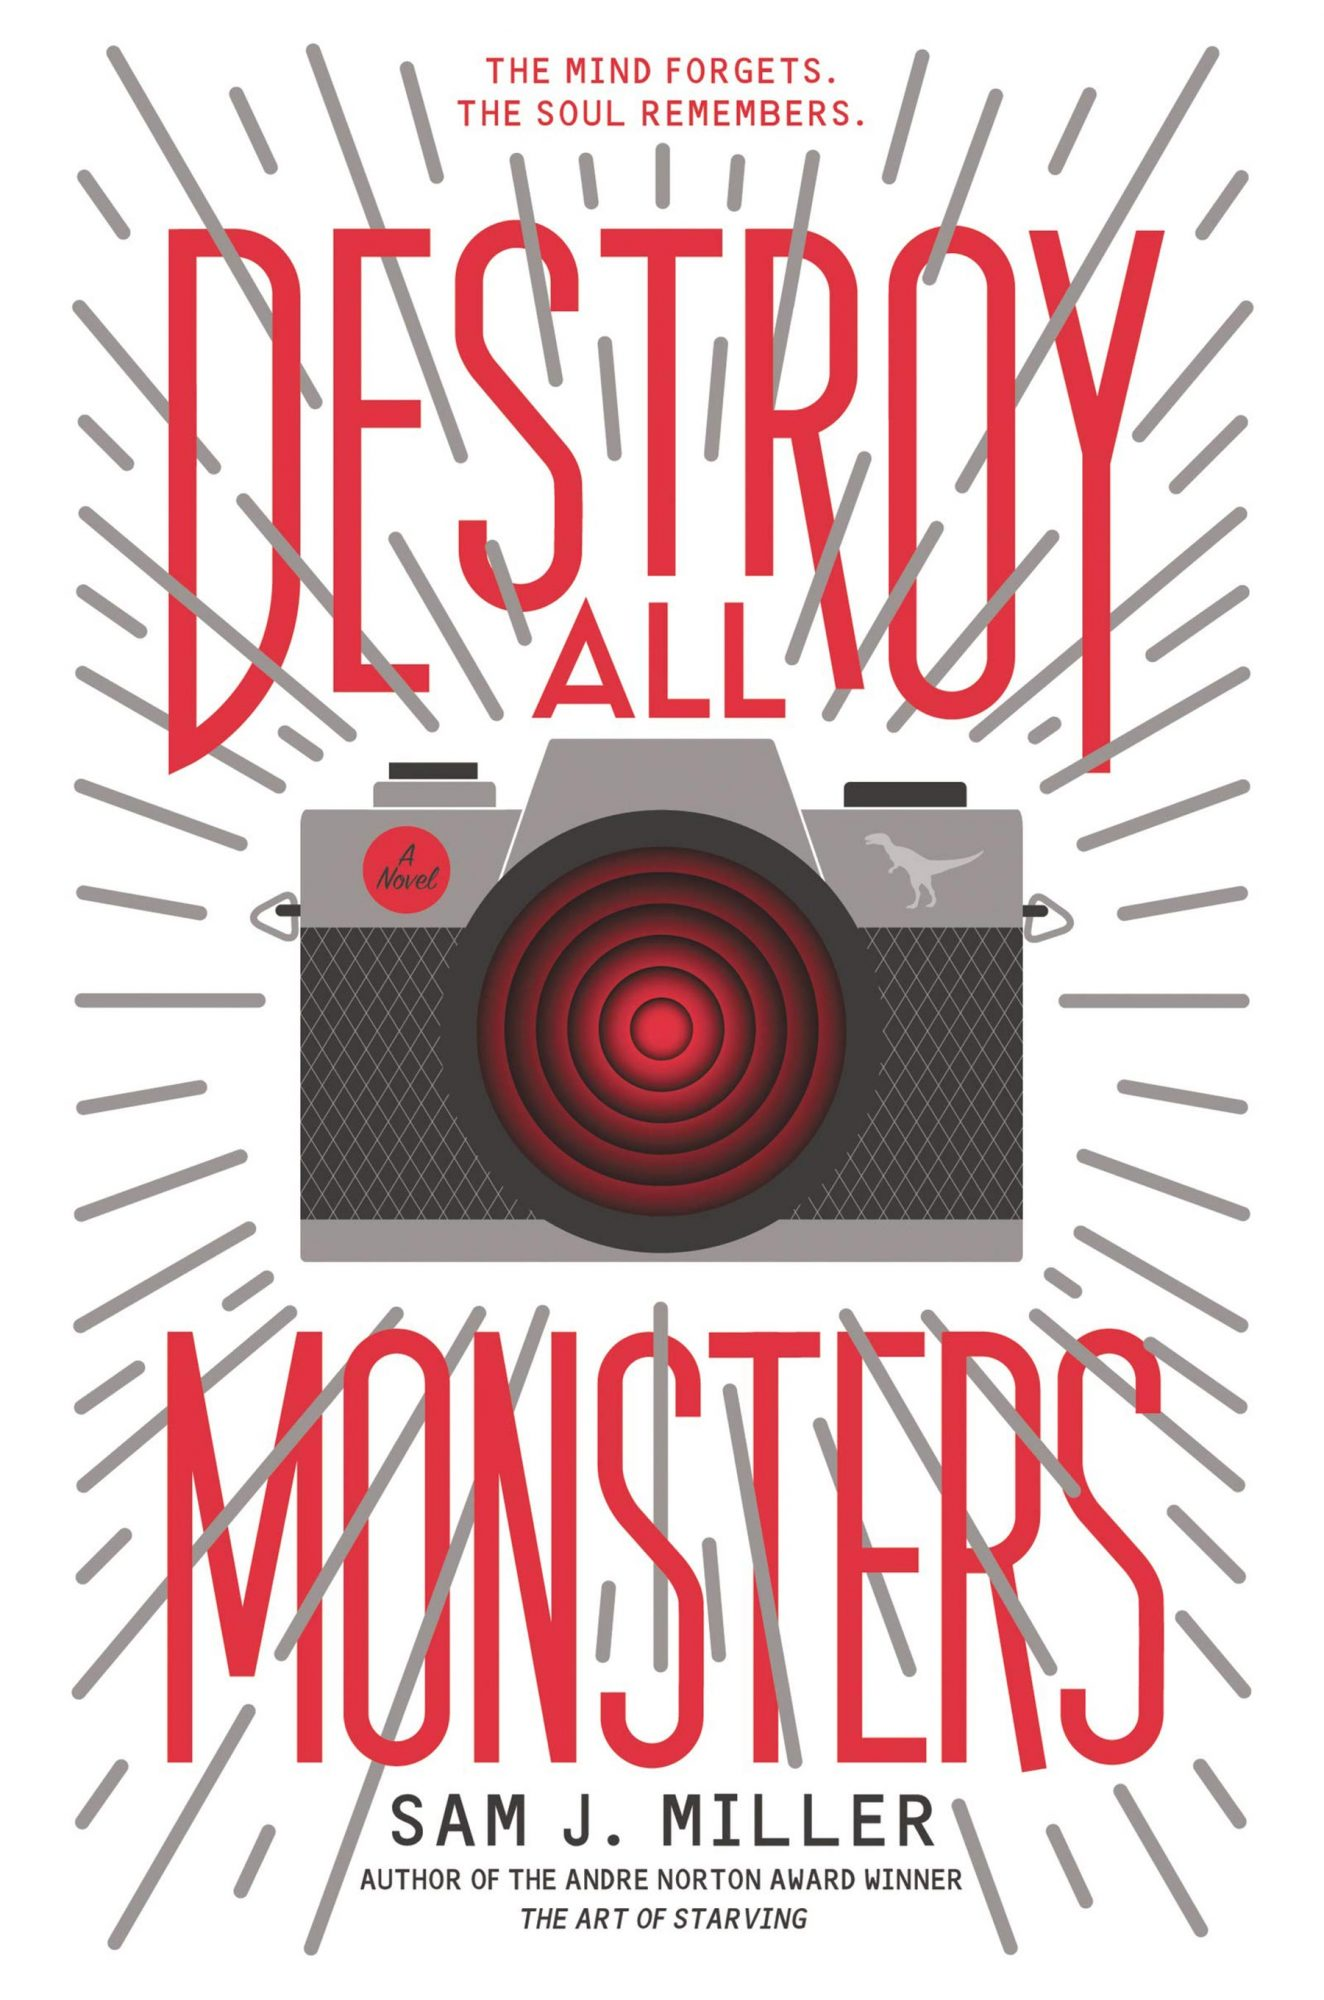 Destroy All Monsters, by Sam J. Miller